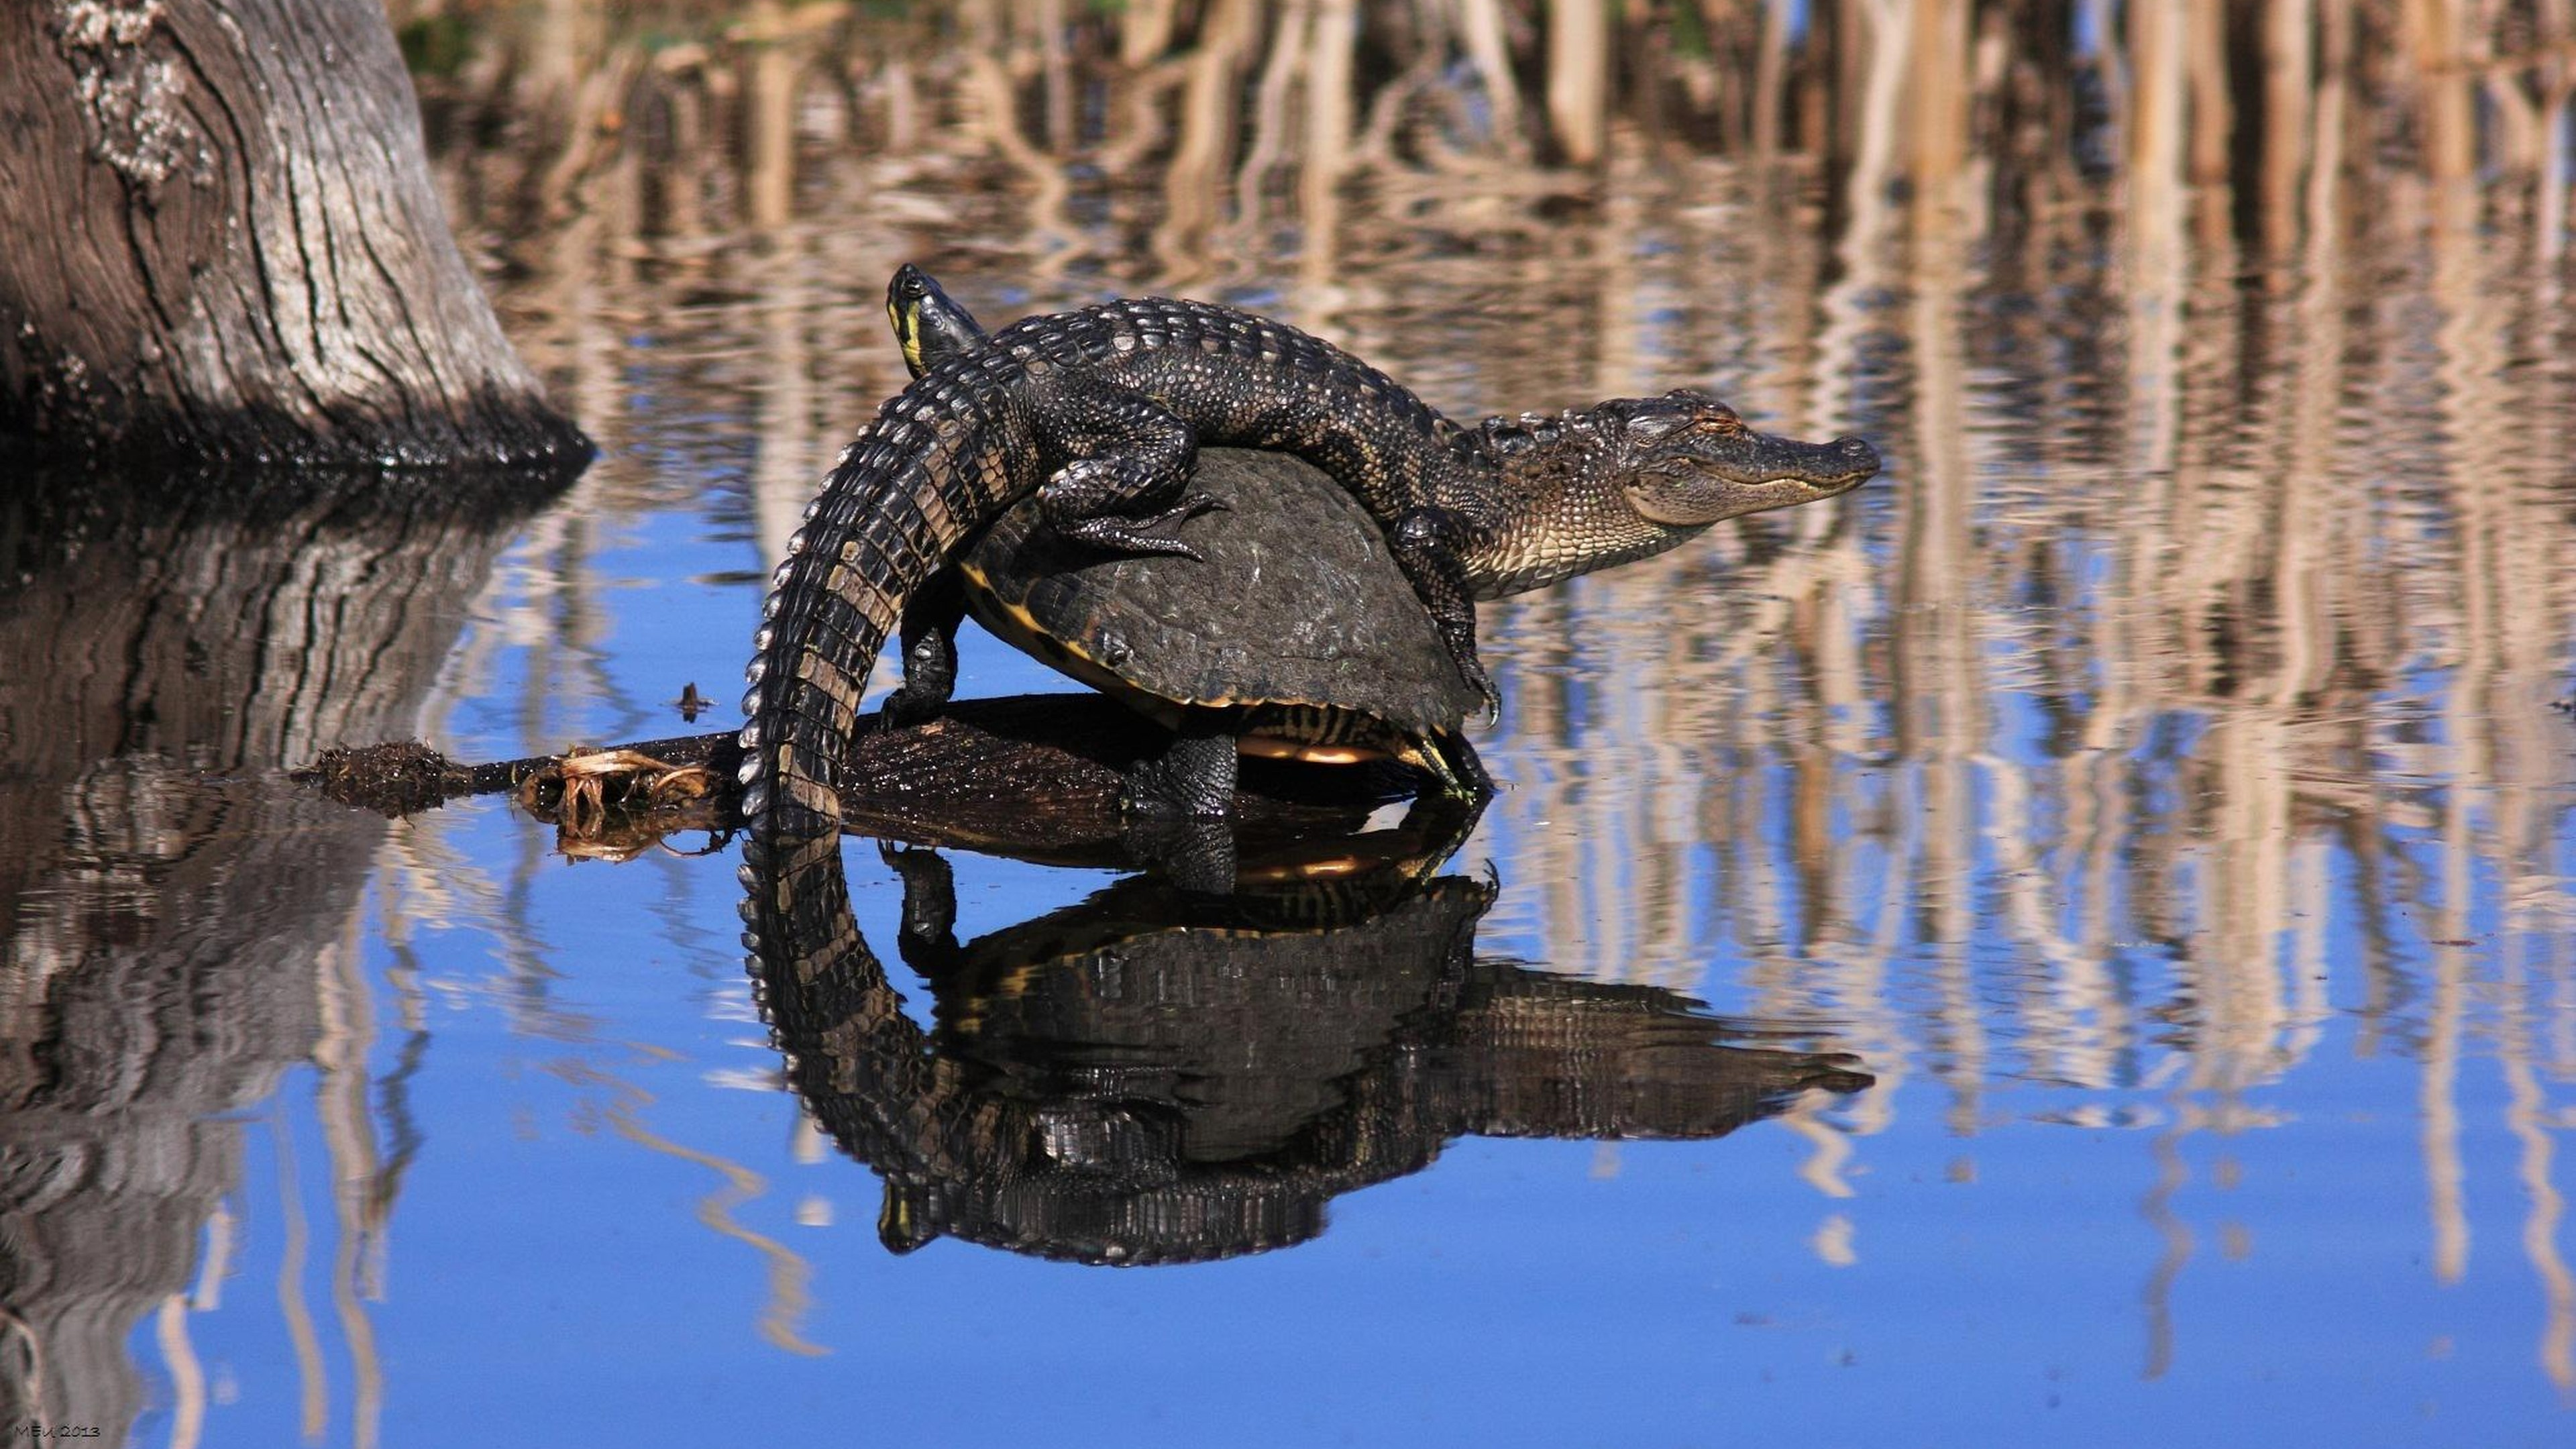 Alligator and tortuga